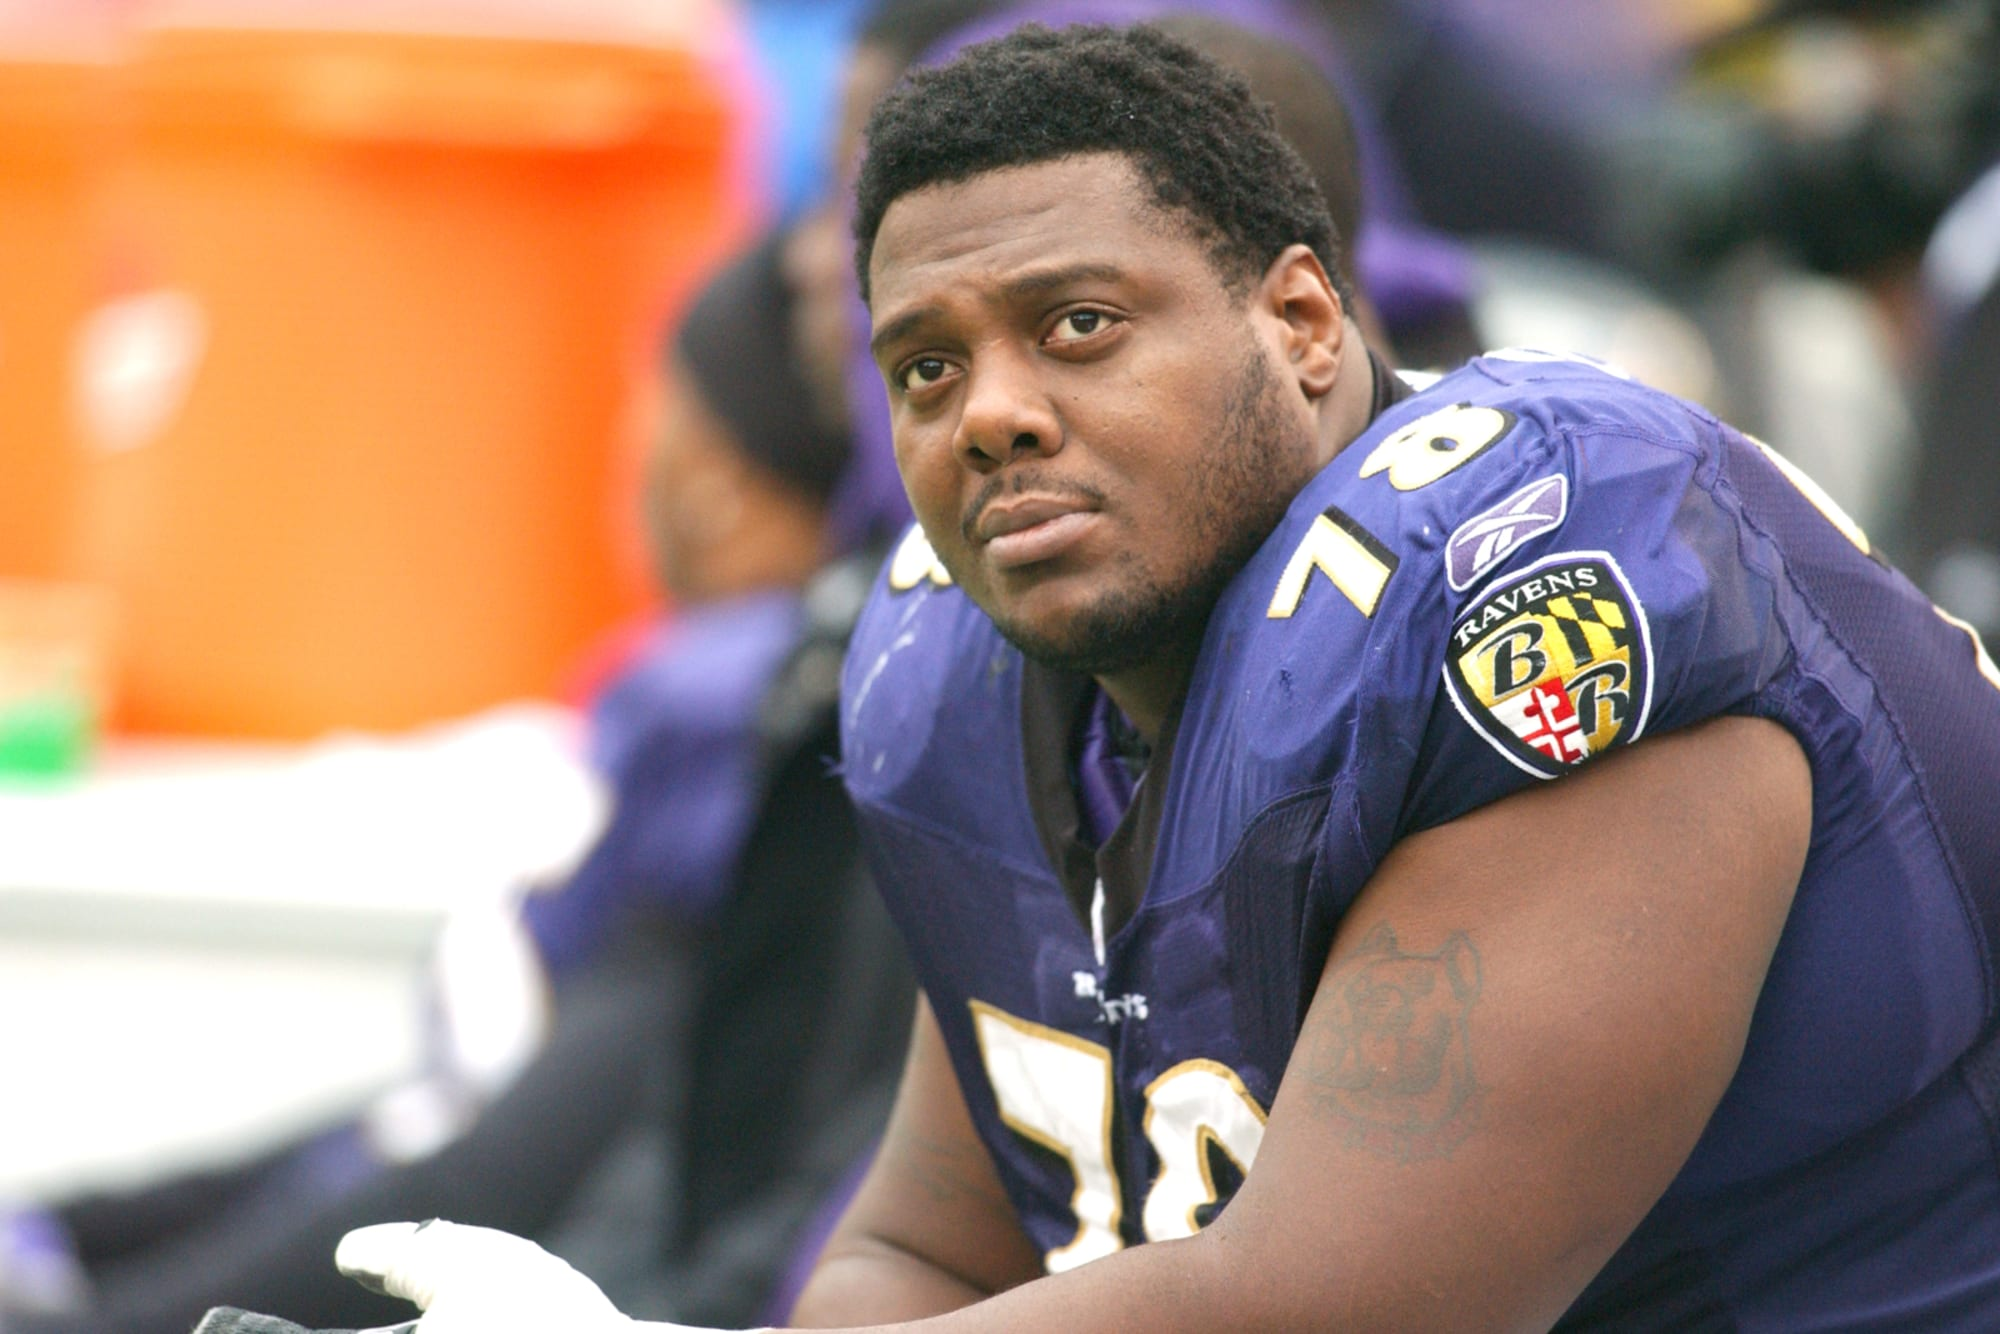 2021 NFL Draft: KC Chiefs have six picks after Orlando Brown trade